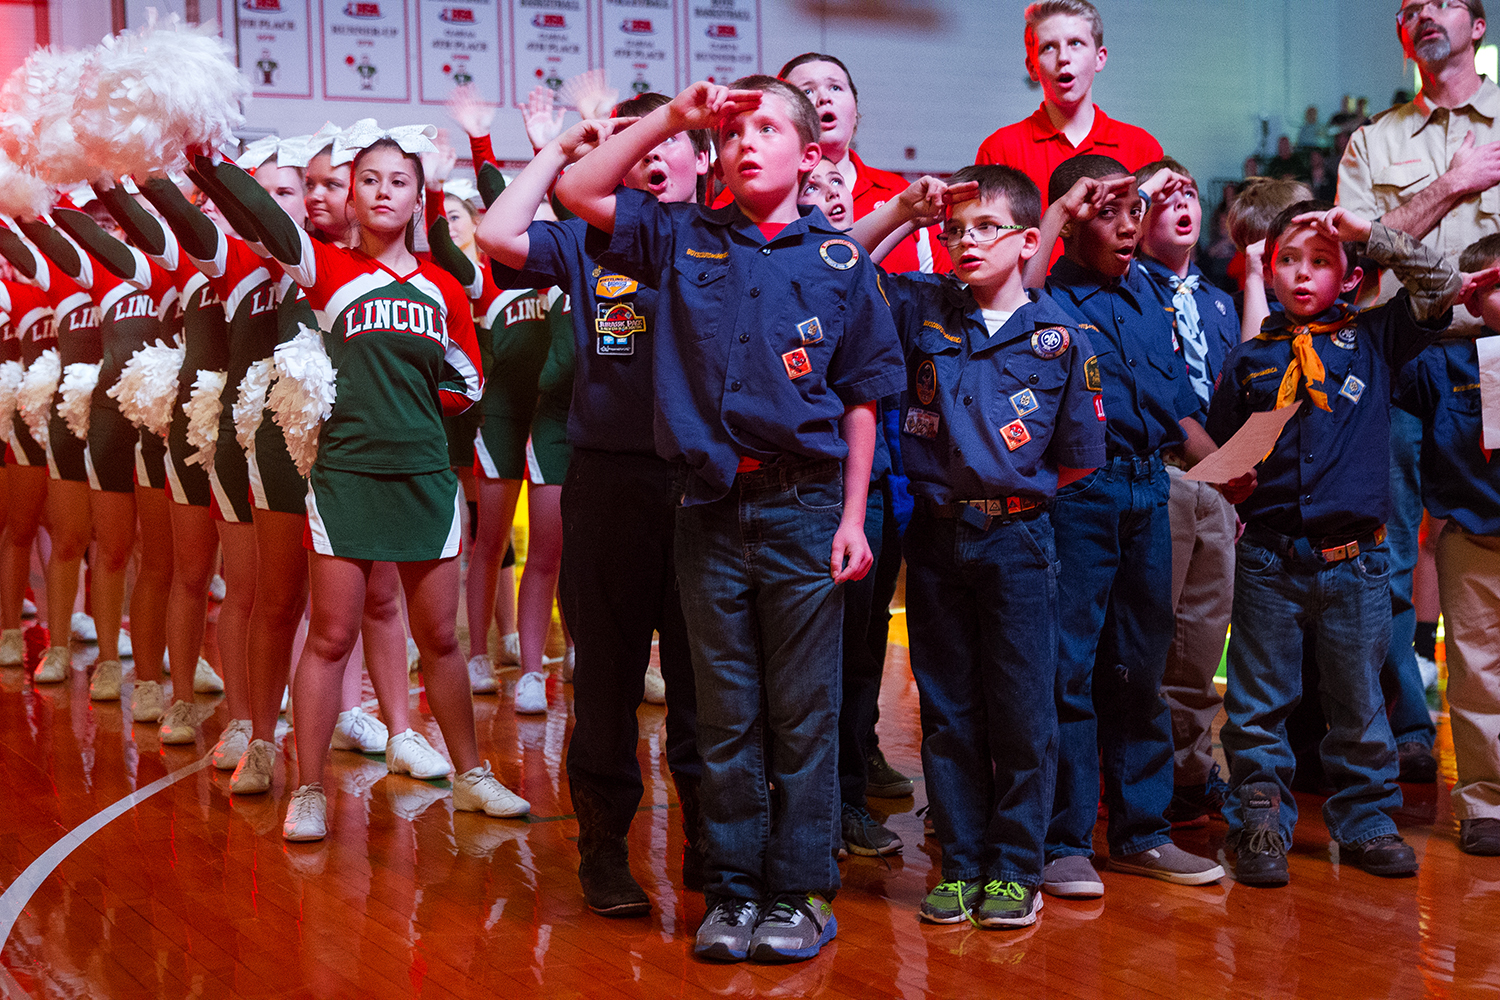 A group of Cub Scouts leads the crowd in the National Anthem before Lincoln faces Lanphier at Lincoln High School Friday, February 10, 2017. Ted Schurter/The State Journal-Register